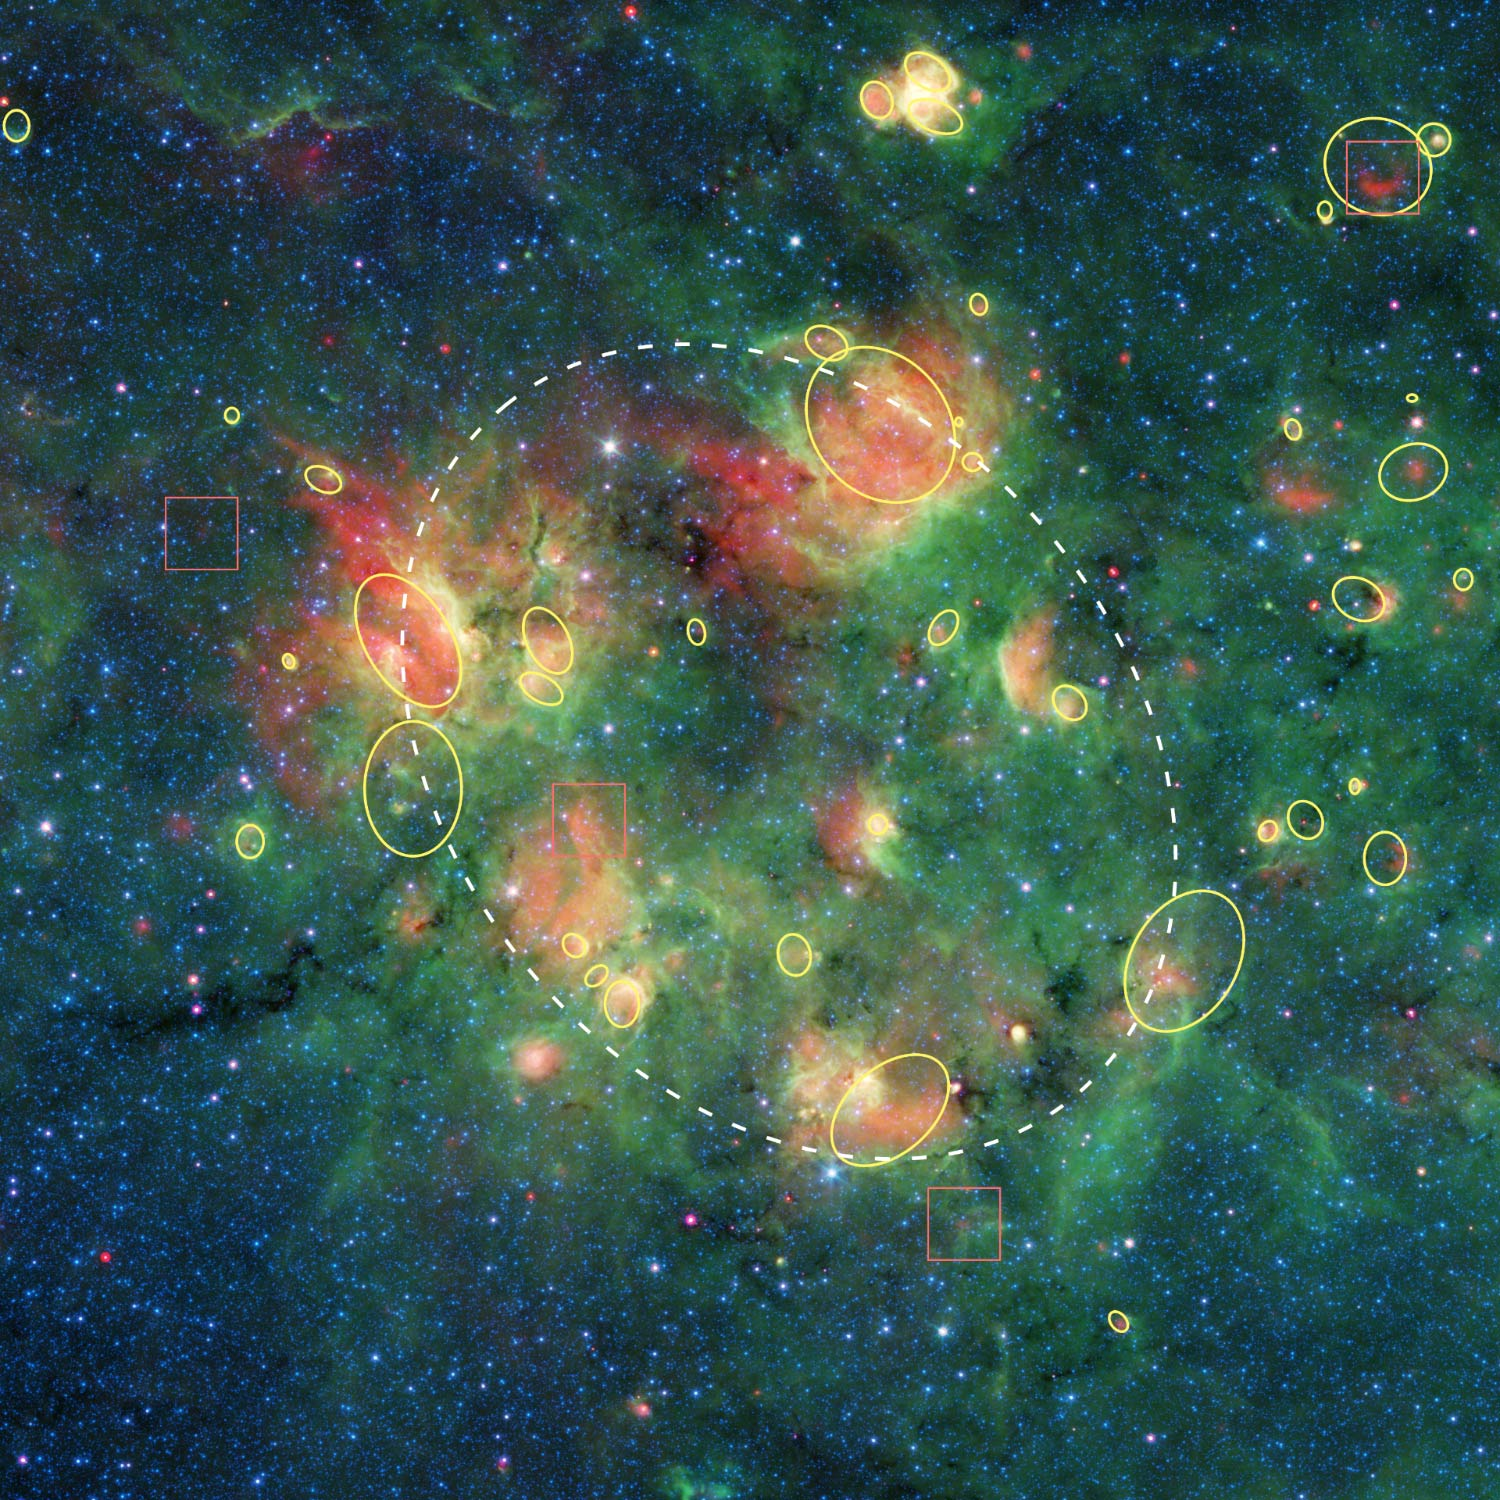 NASA's Spitzer Spots Vibrant 'Cosmic Bubble Bath' in Milky Way